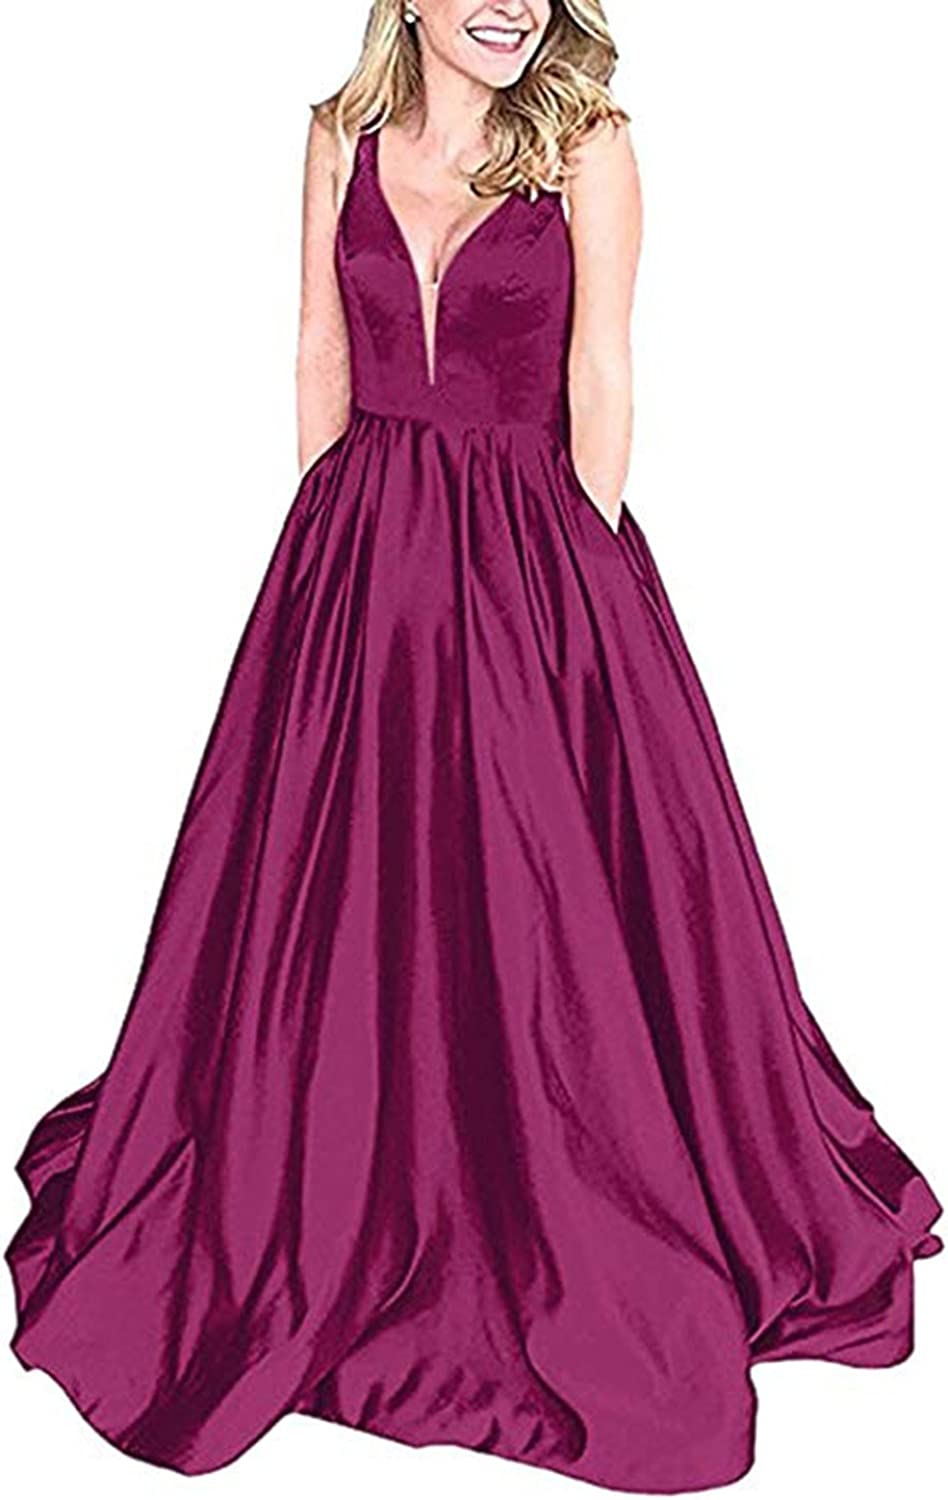 HerDress Women's Deep V Neck Satin Prom Dresses Long with Pockets Aline Formal Evening Party Ball Gowns 2018 Plus Size